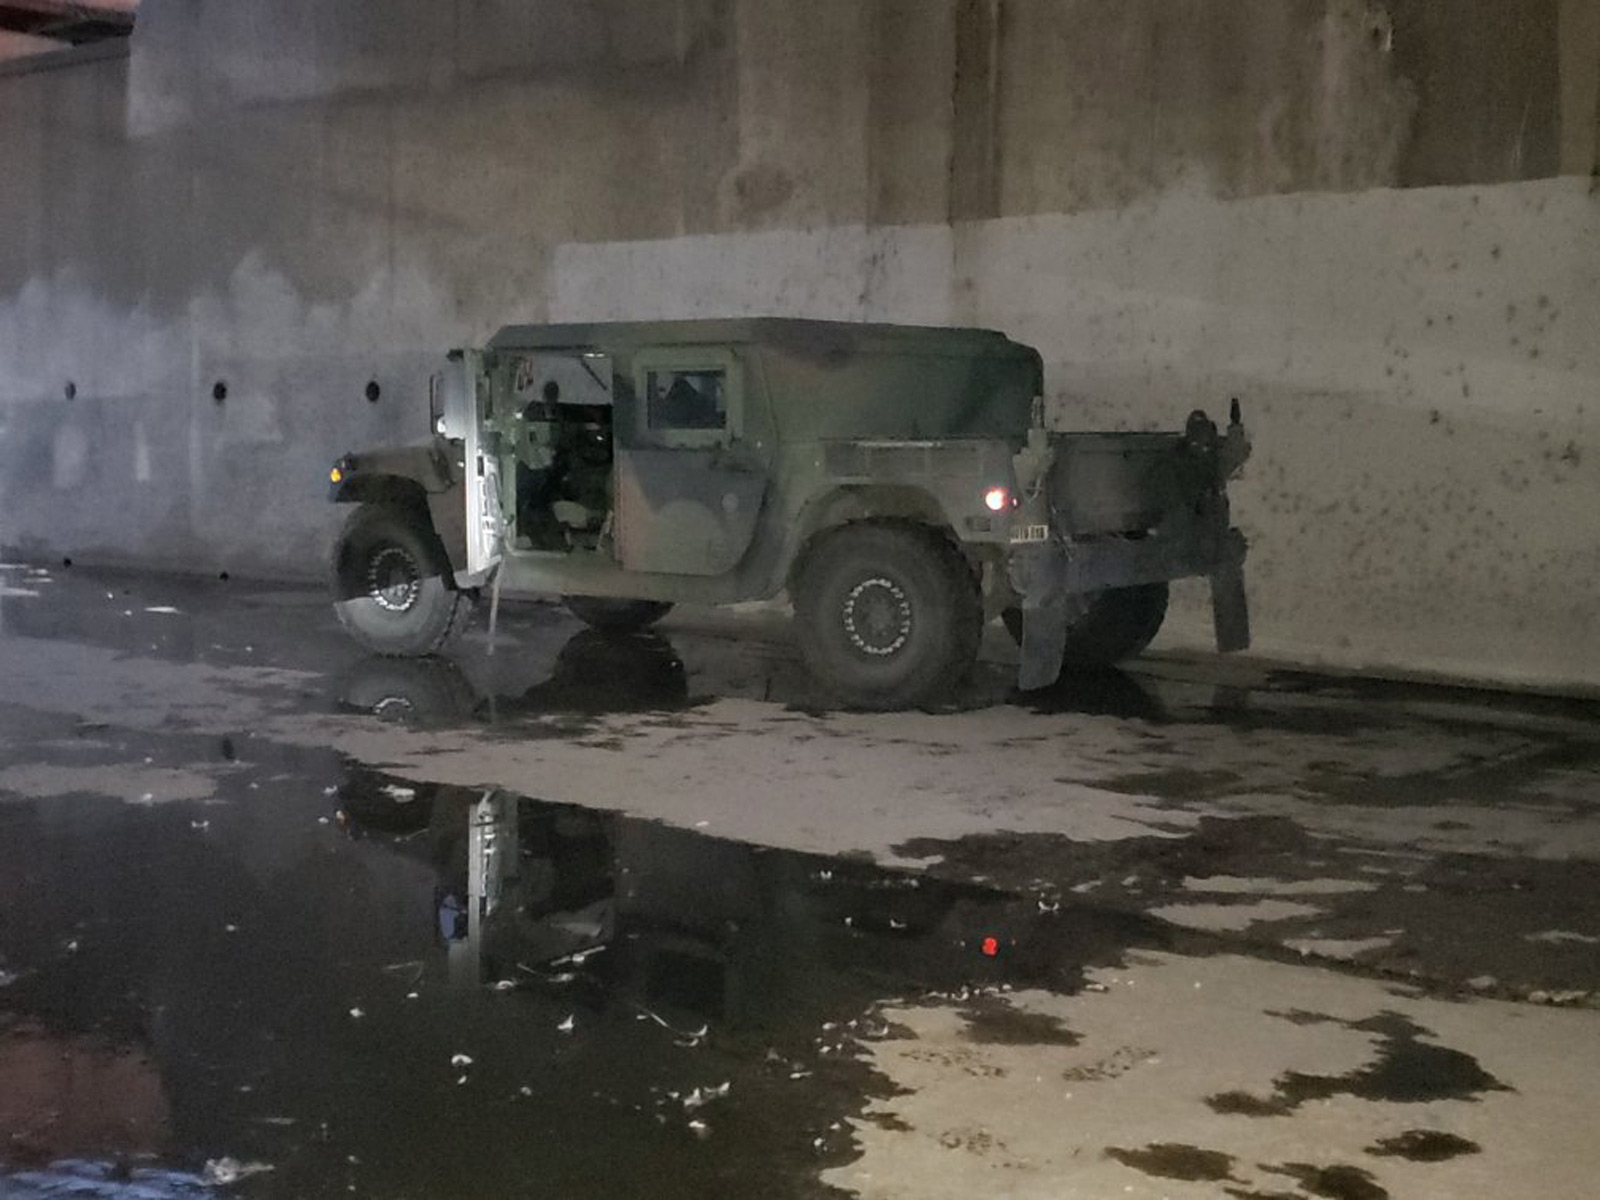 Humvee recovered after being stolen from military facility